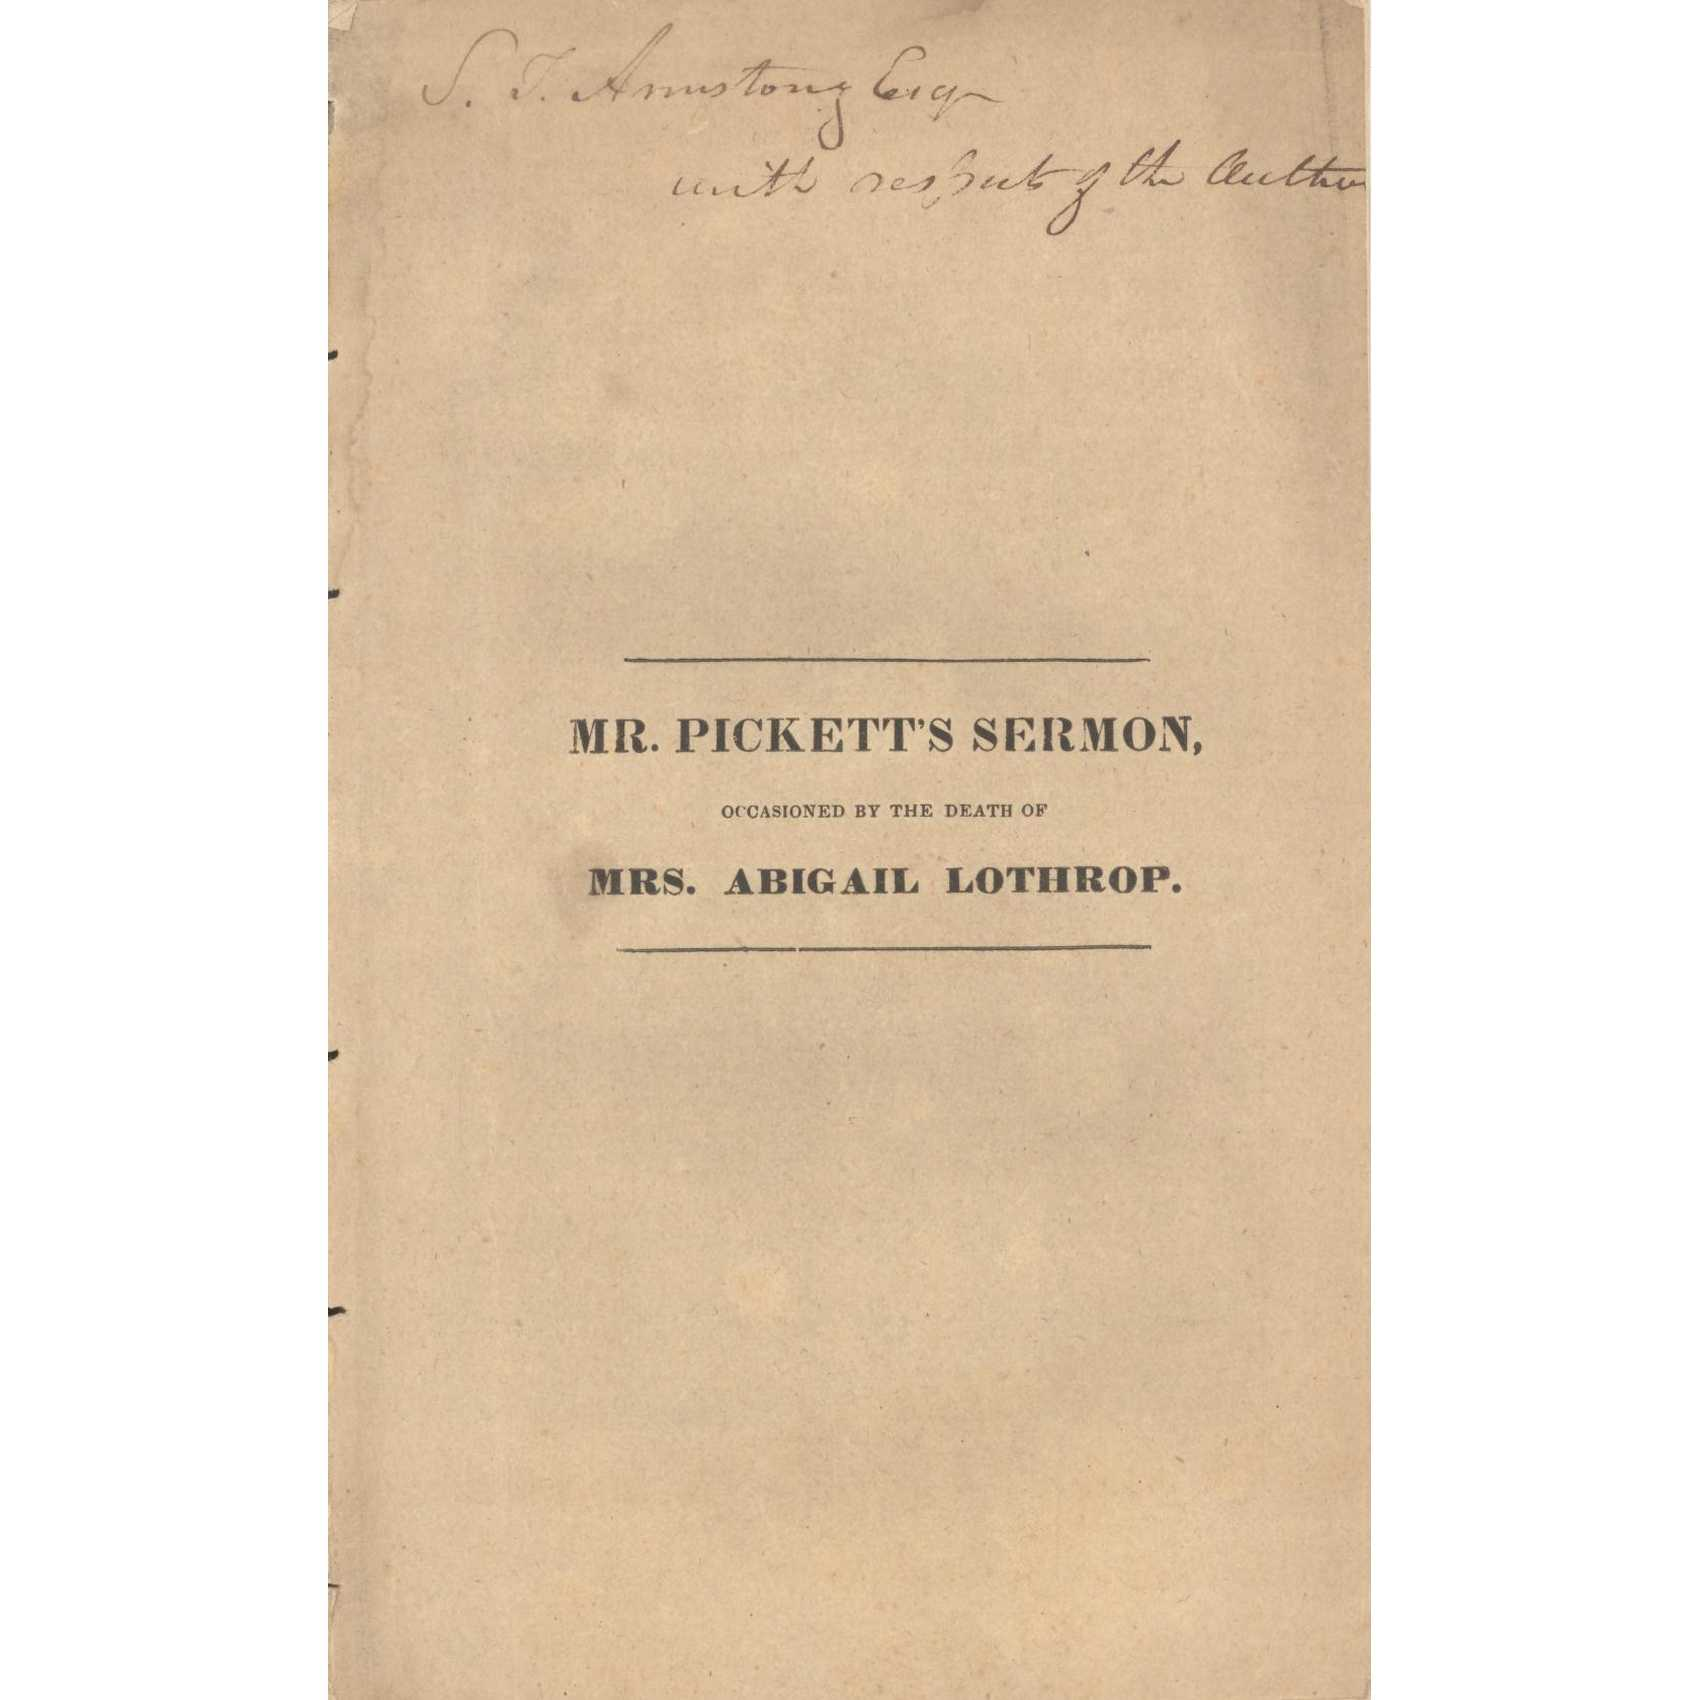 Image for The Sound Of Drums: Selected Writings of Spencer B. King from His Civil War Centennial Columns... in the Macon (Georgia) Telegraph-News, Etc.